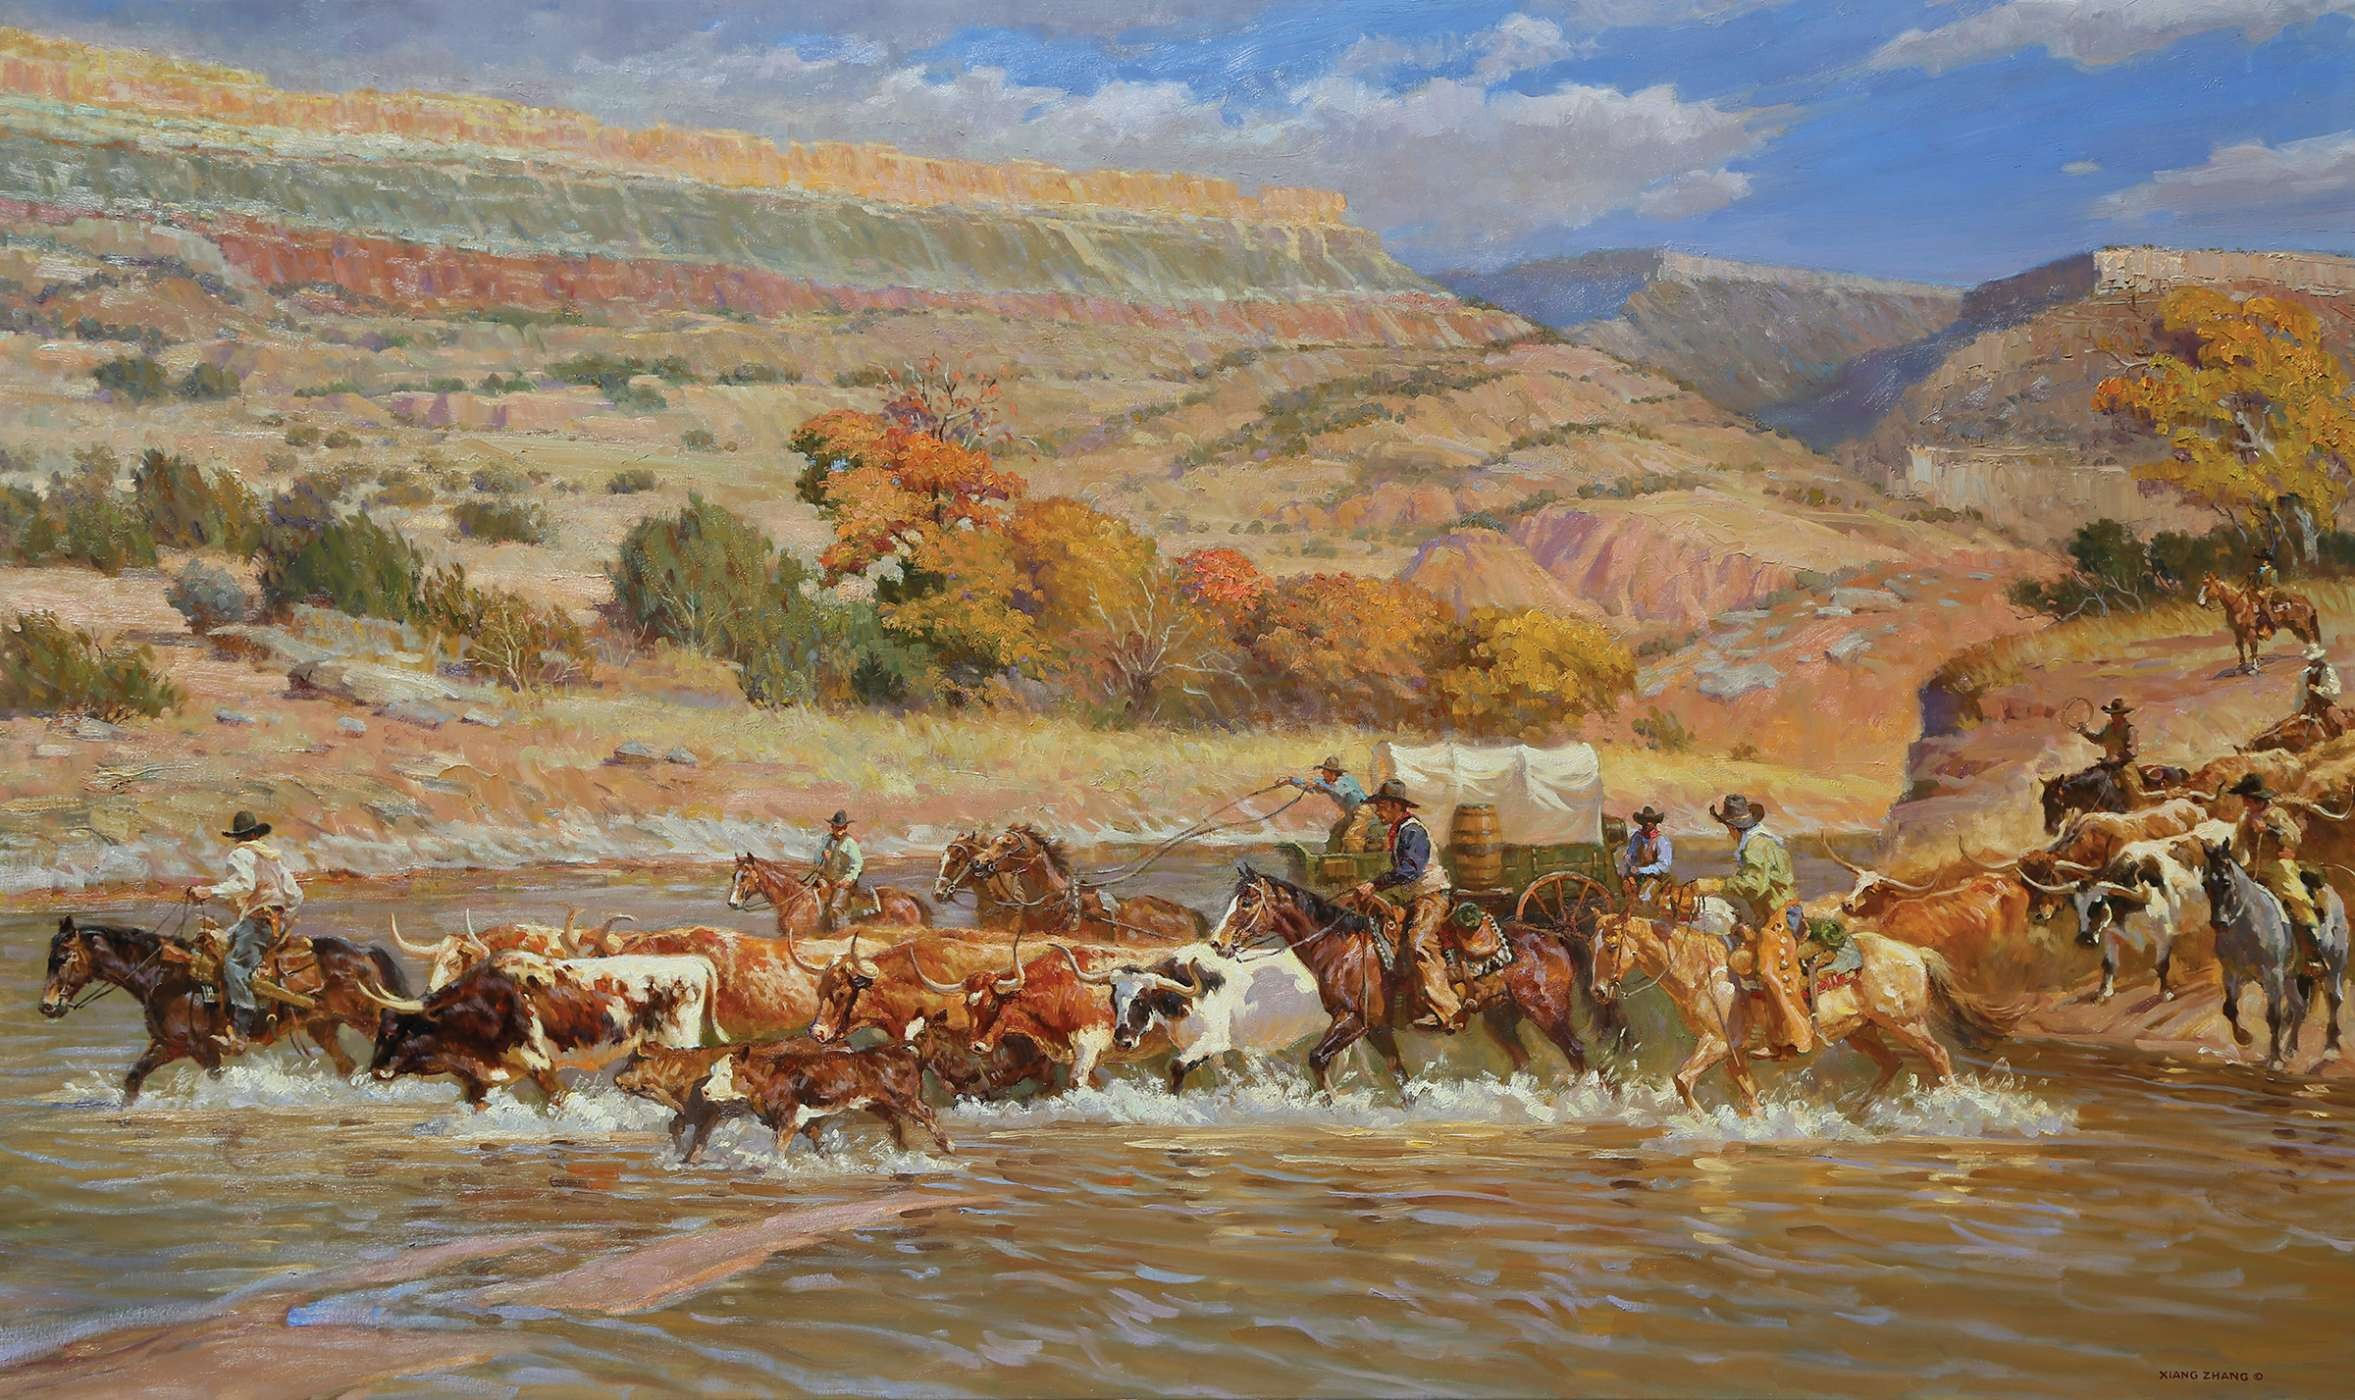 Western Oil Painting of Palo Duro cattle drive by Xiang Zhang